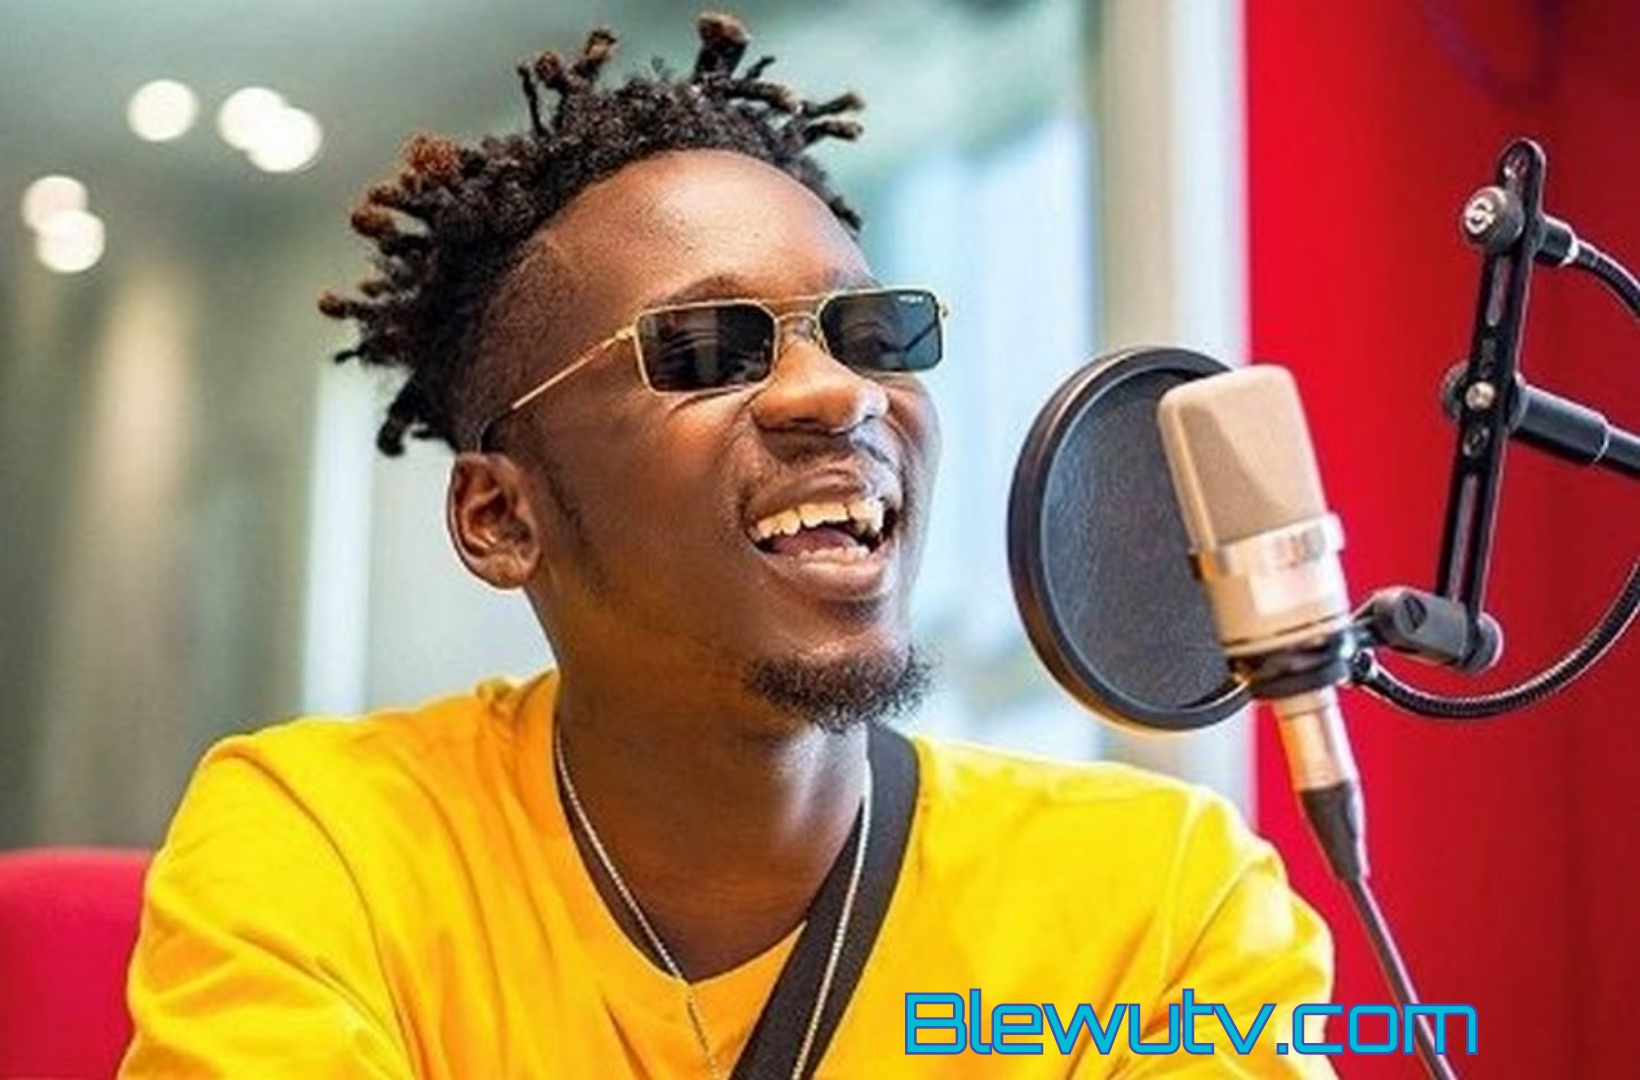 It Took Me 10 Years To Get a Hit Song - Mr. Eazi (Read more)